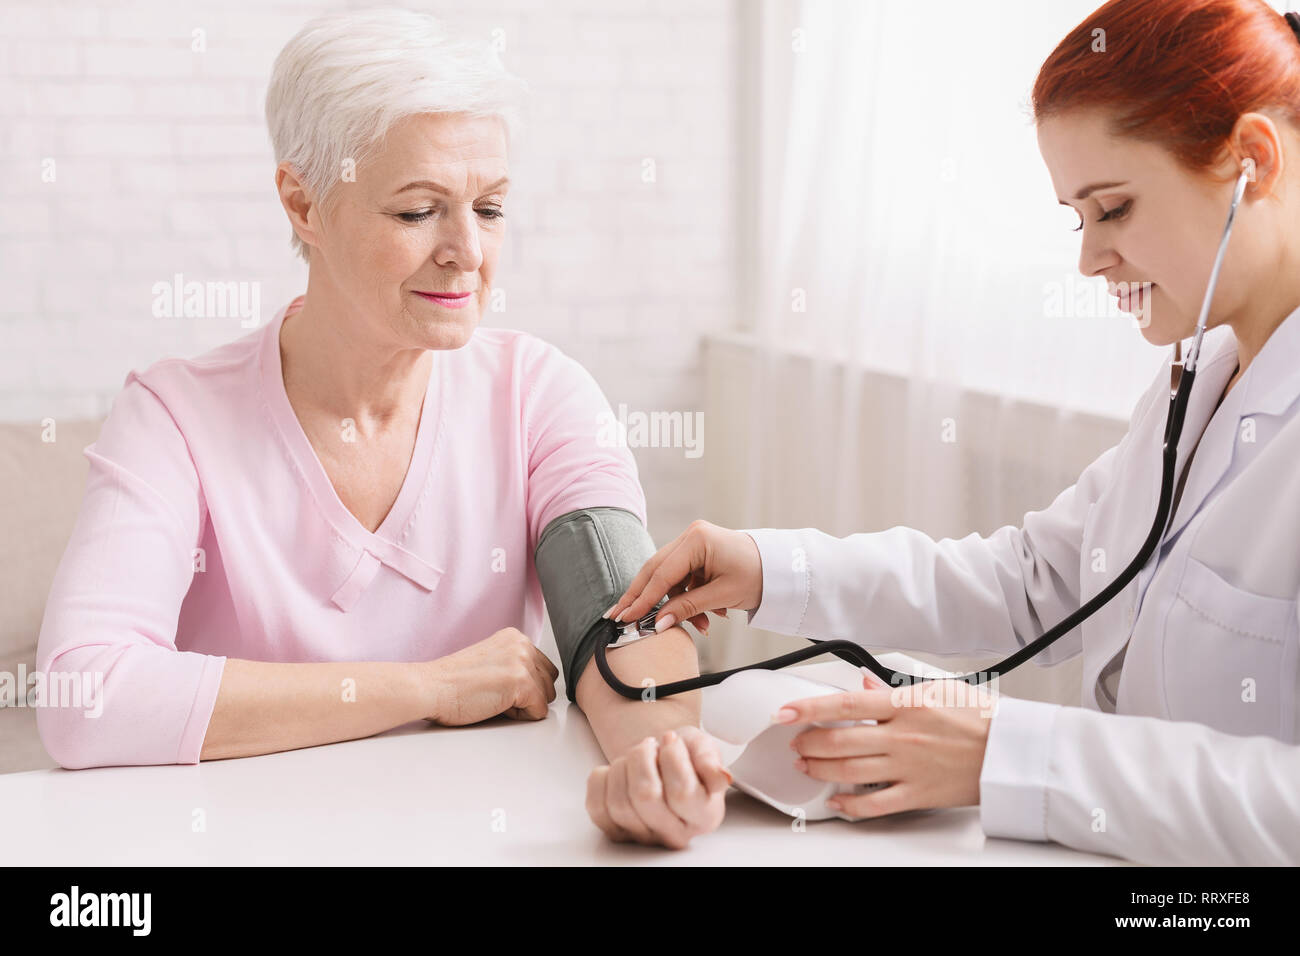 Doctor checking blood pressure of senior patient - Stock Image